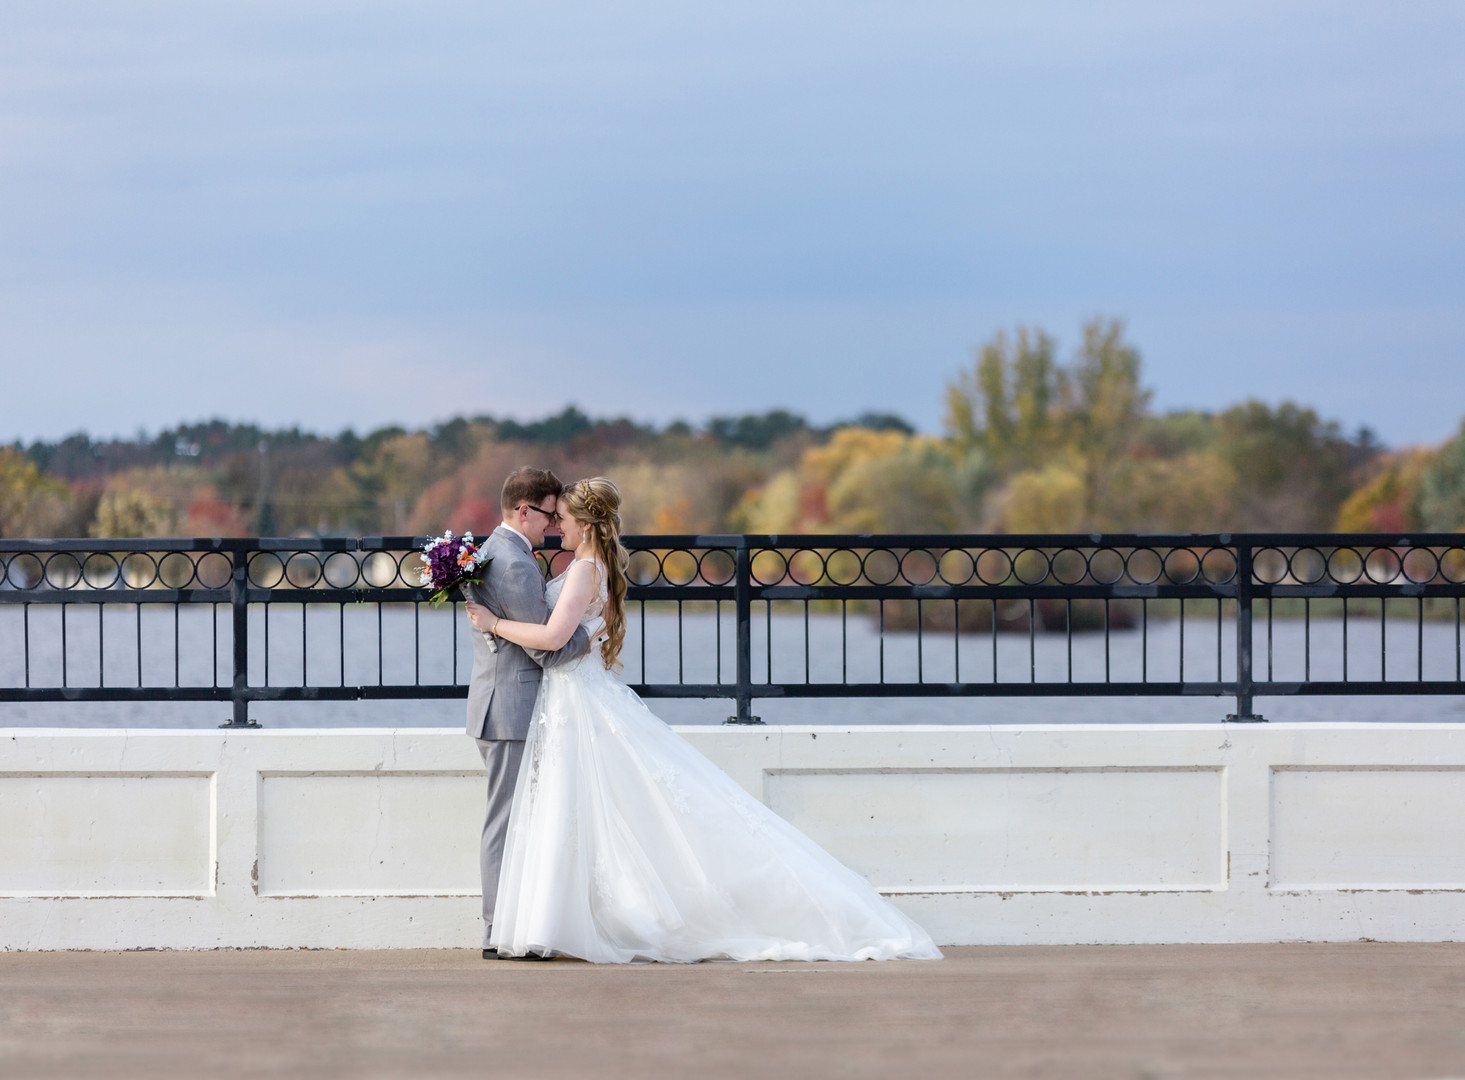 bride and groom wedding portrait on stevens point bridge overlooking water and fall trees foilage